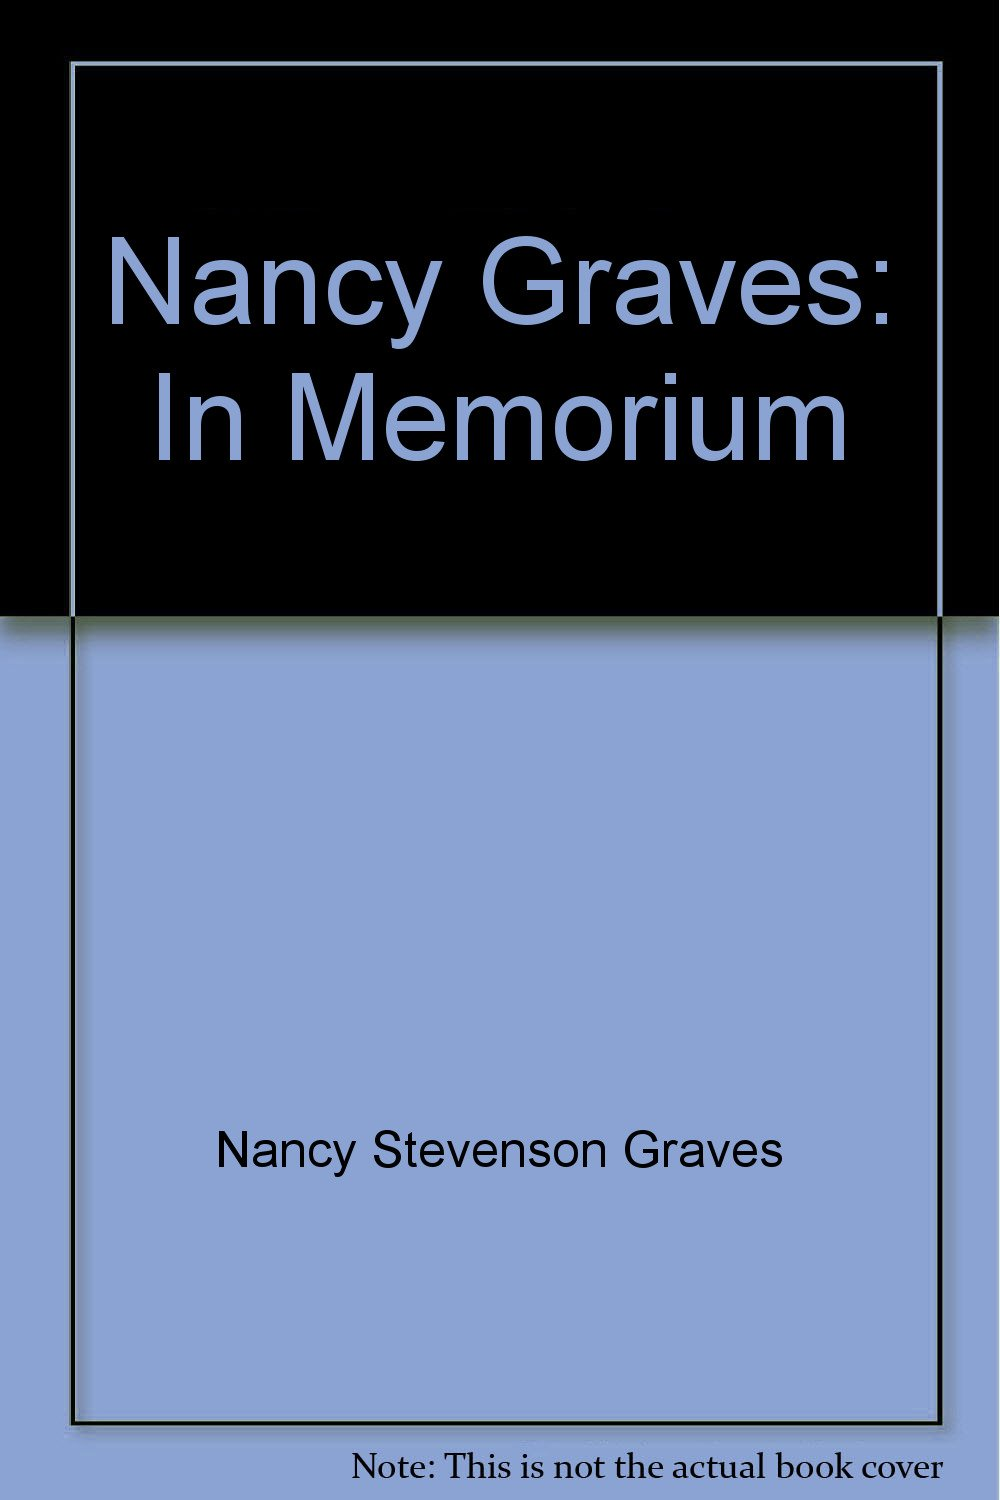 nancy graves in memorium